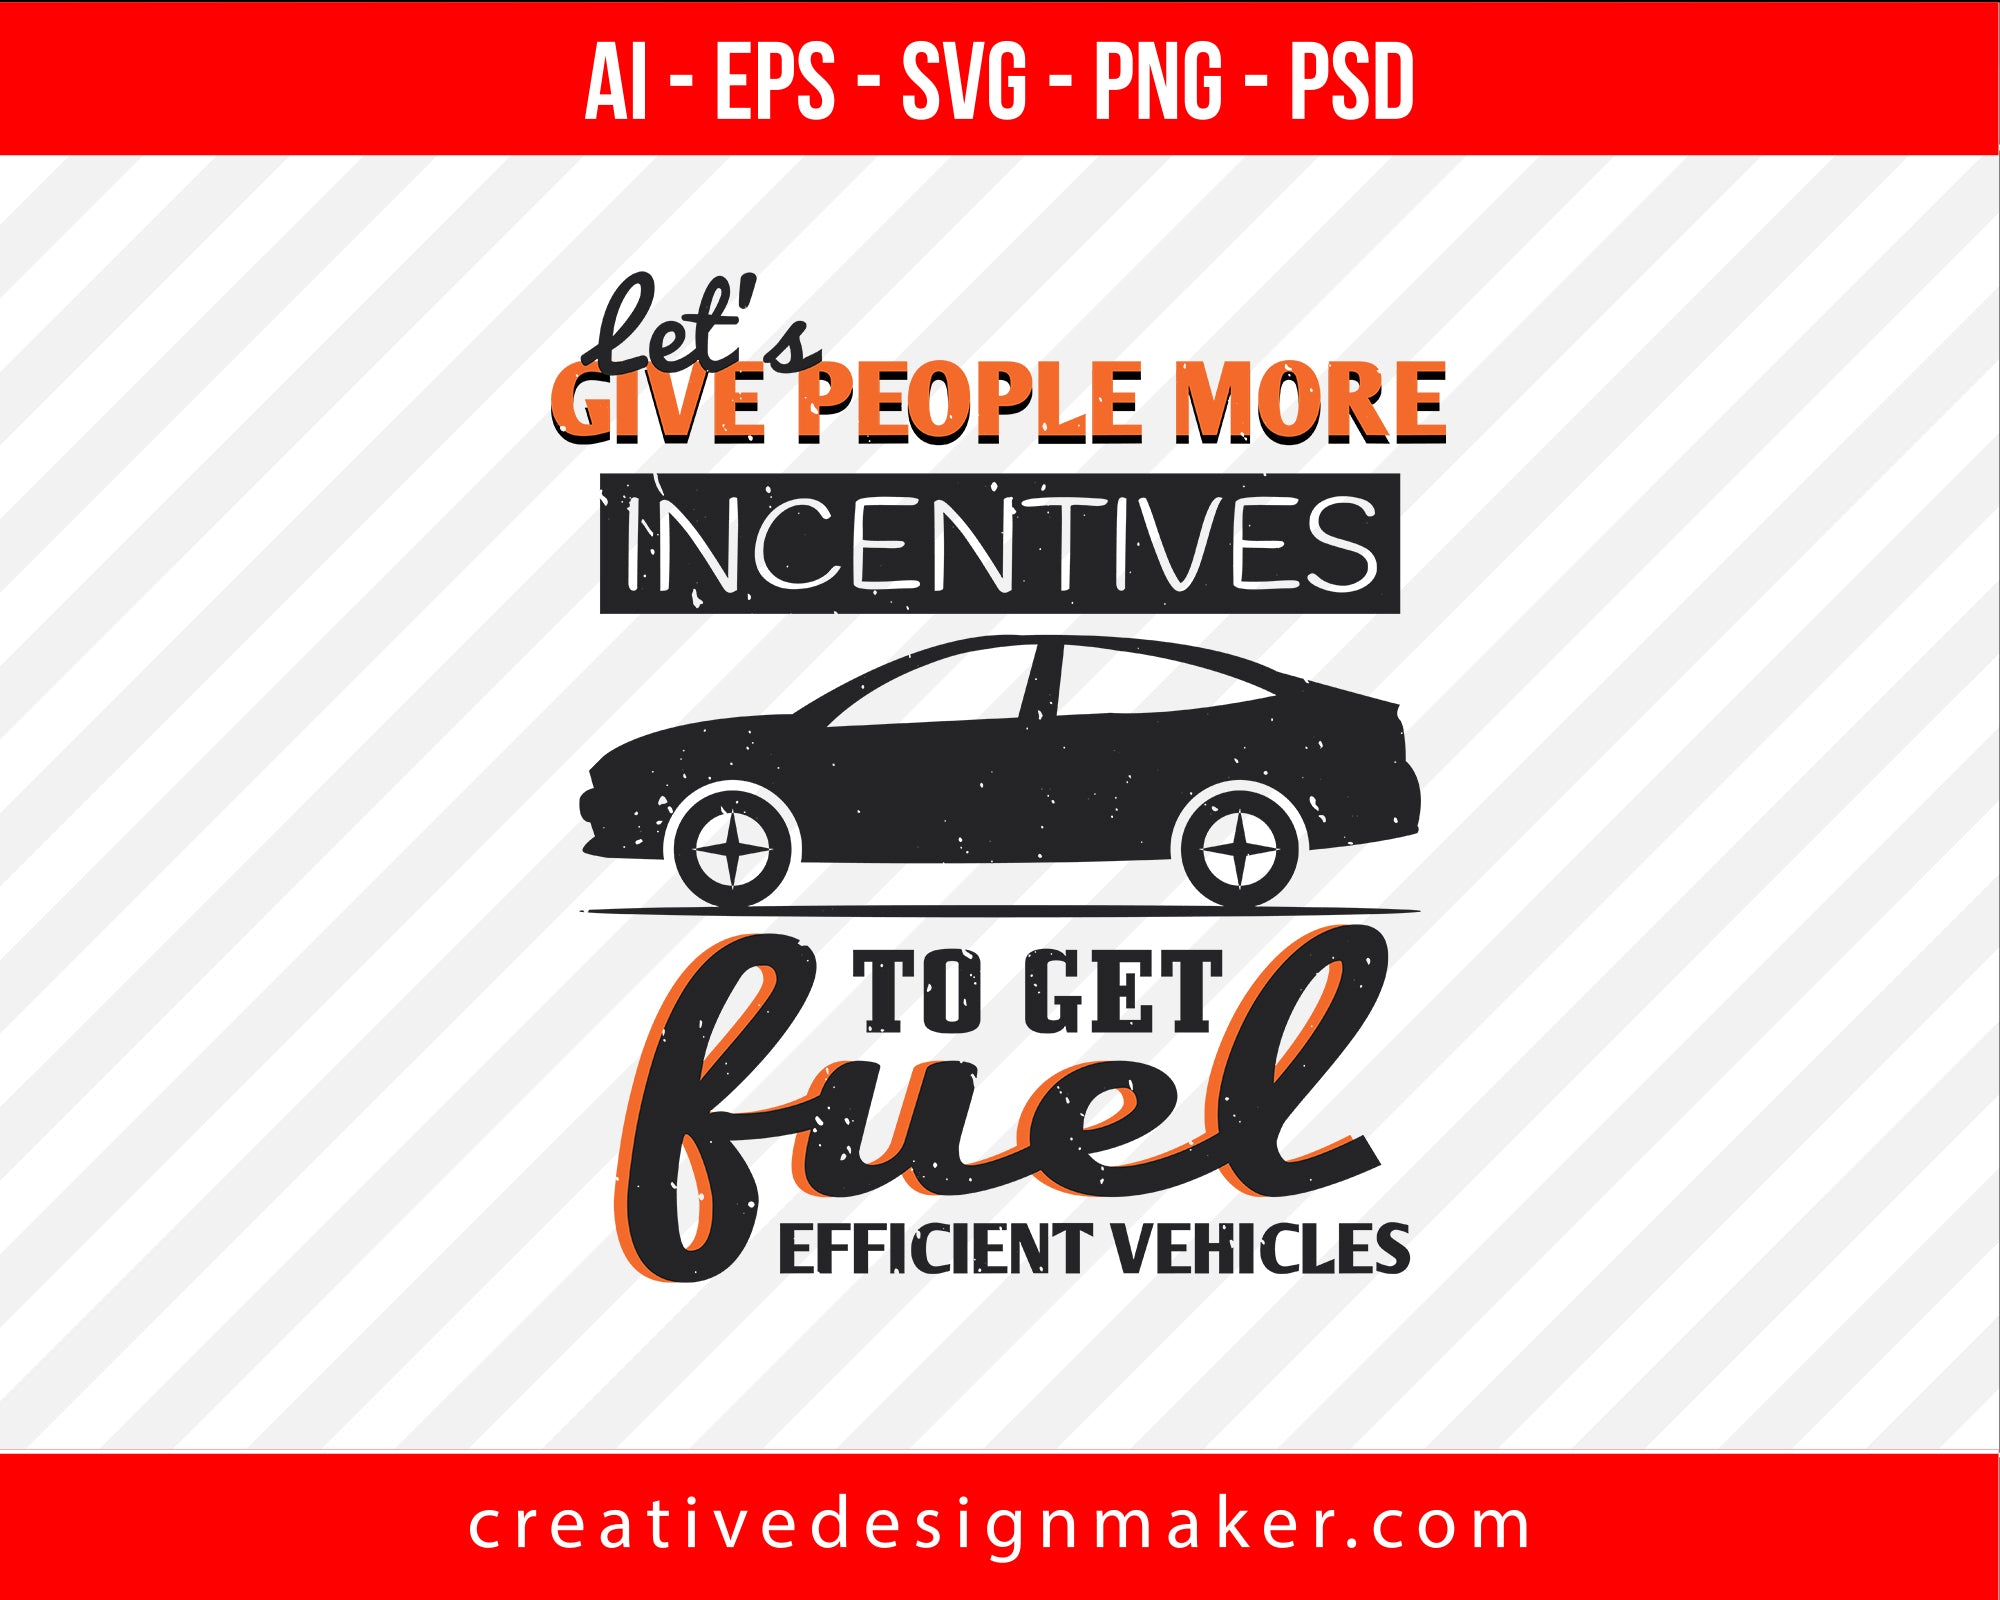 Let's give people more incentives to get fuel efficient vehicles Print Ready Editable T-Shirt SVG Design!